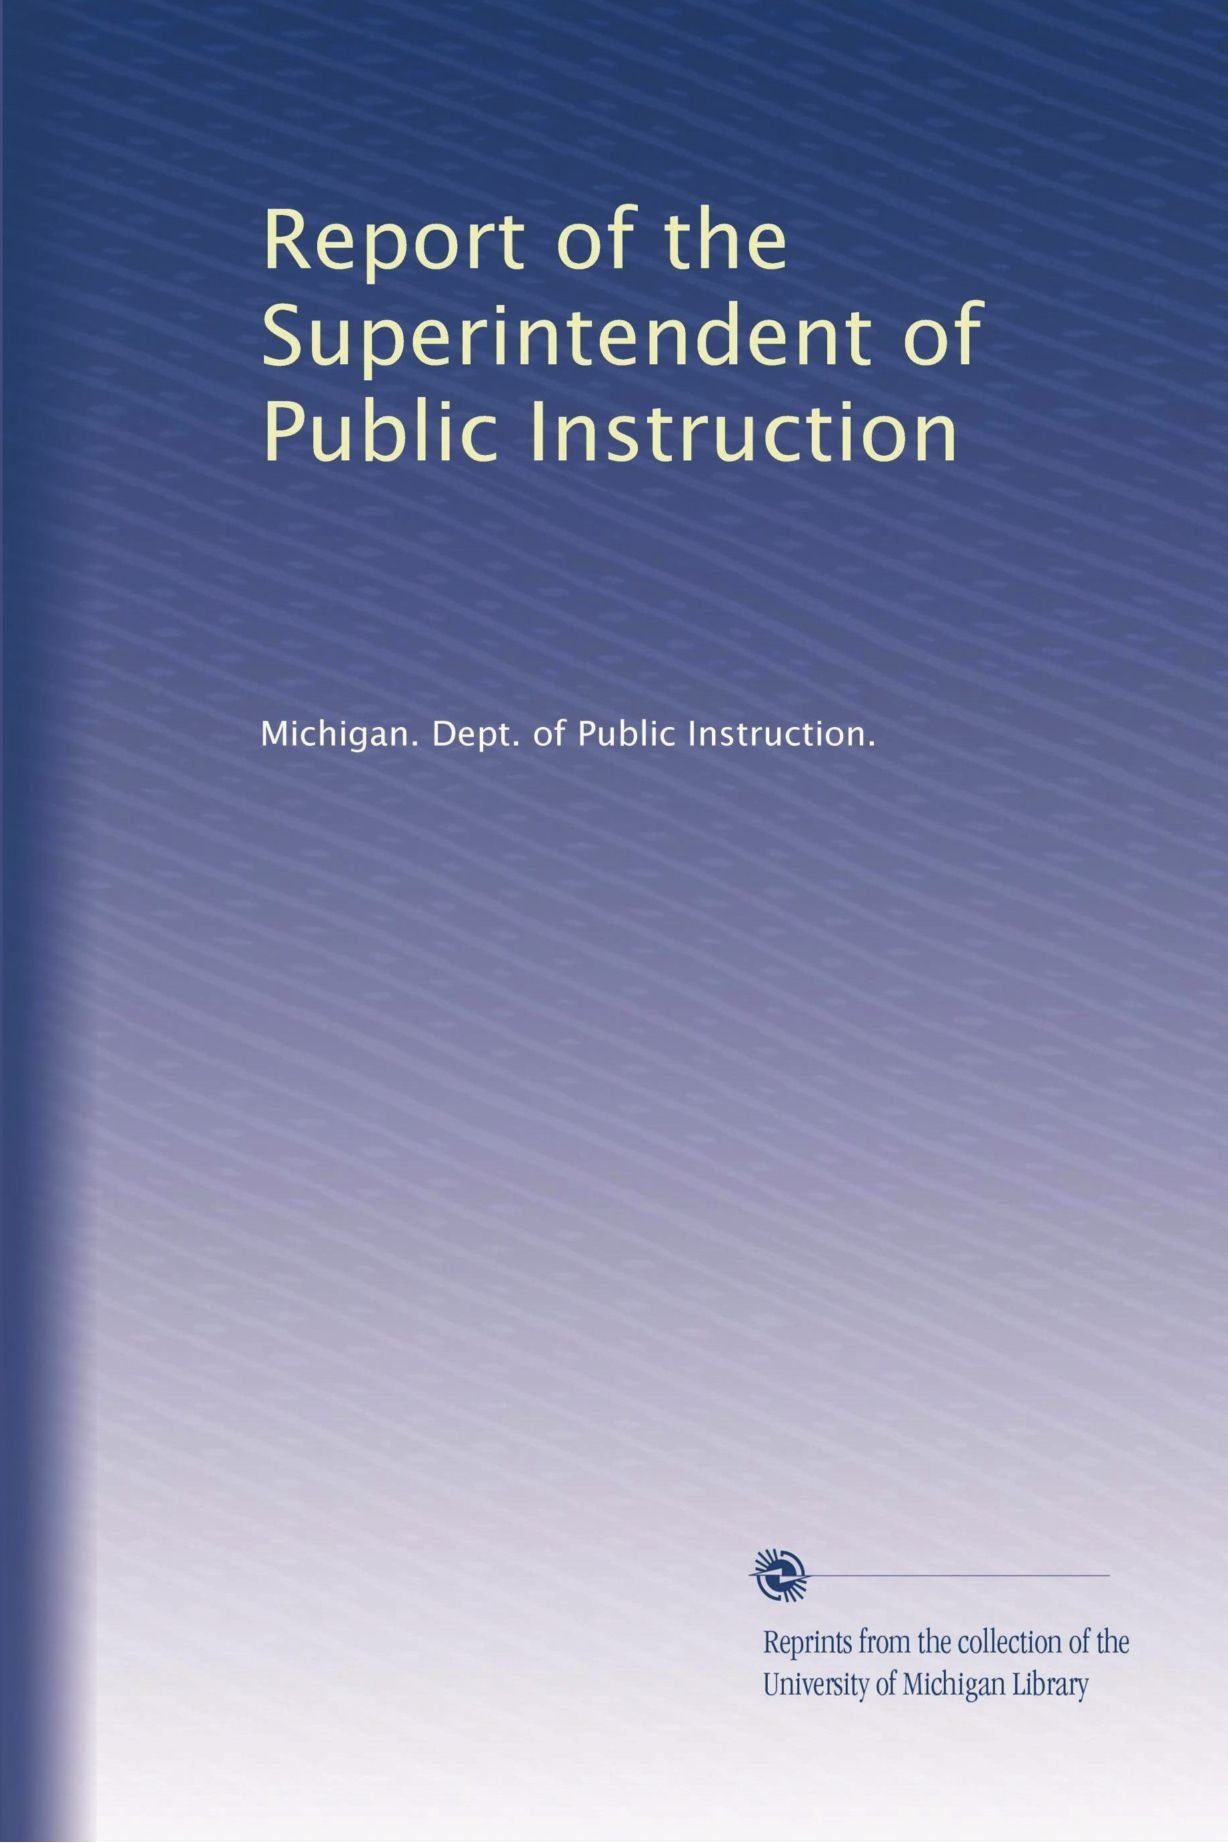 Download Report of the Superintendent of Public Instruction (Volume 24) PDF